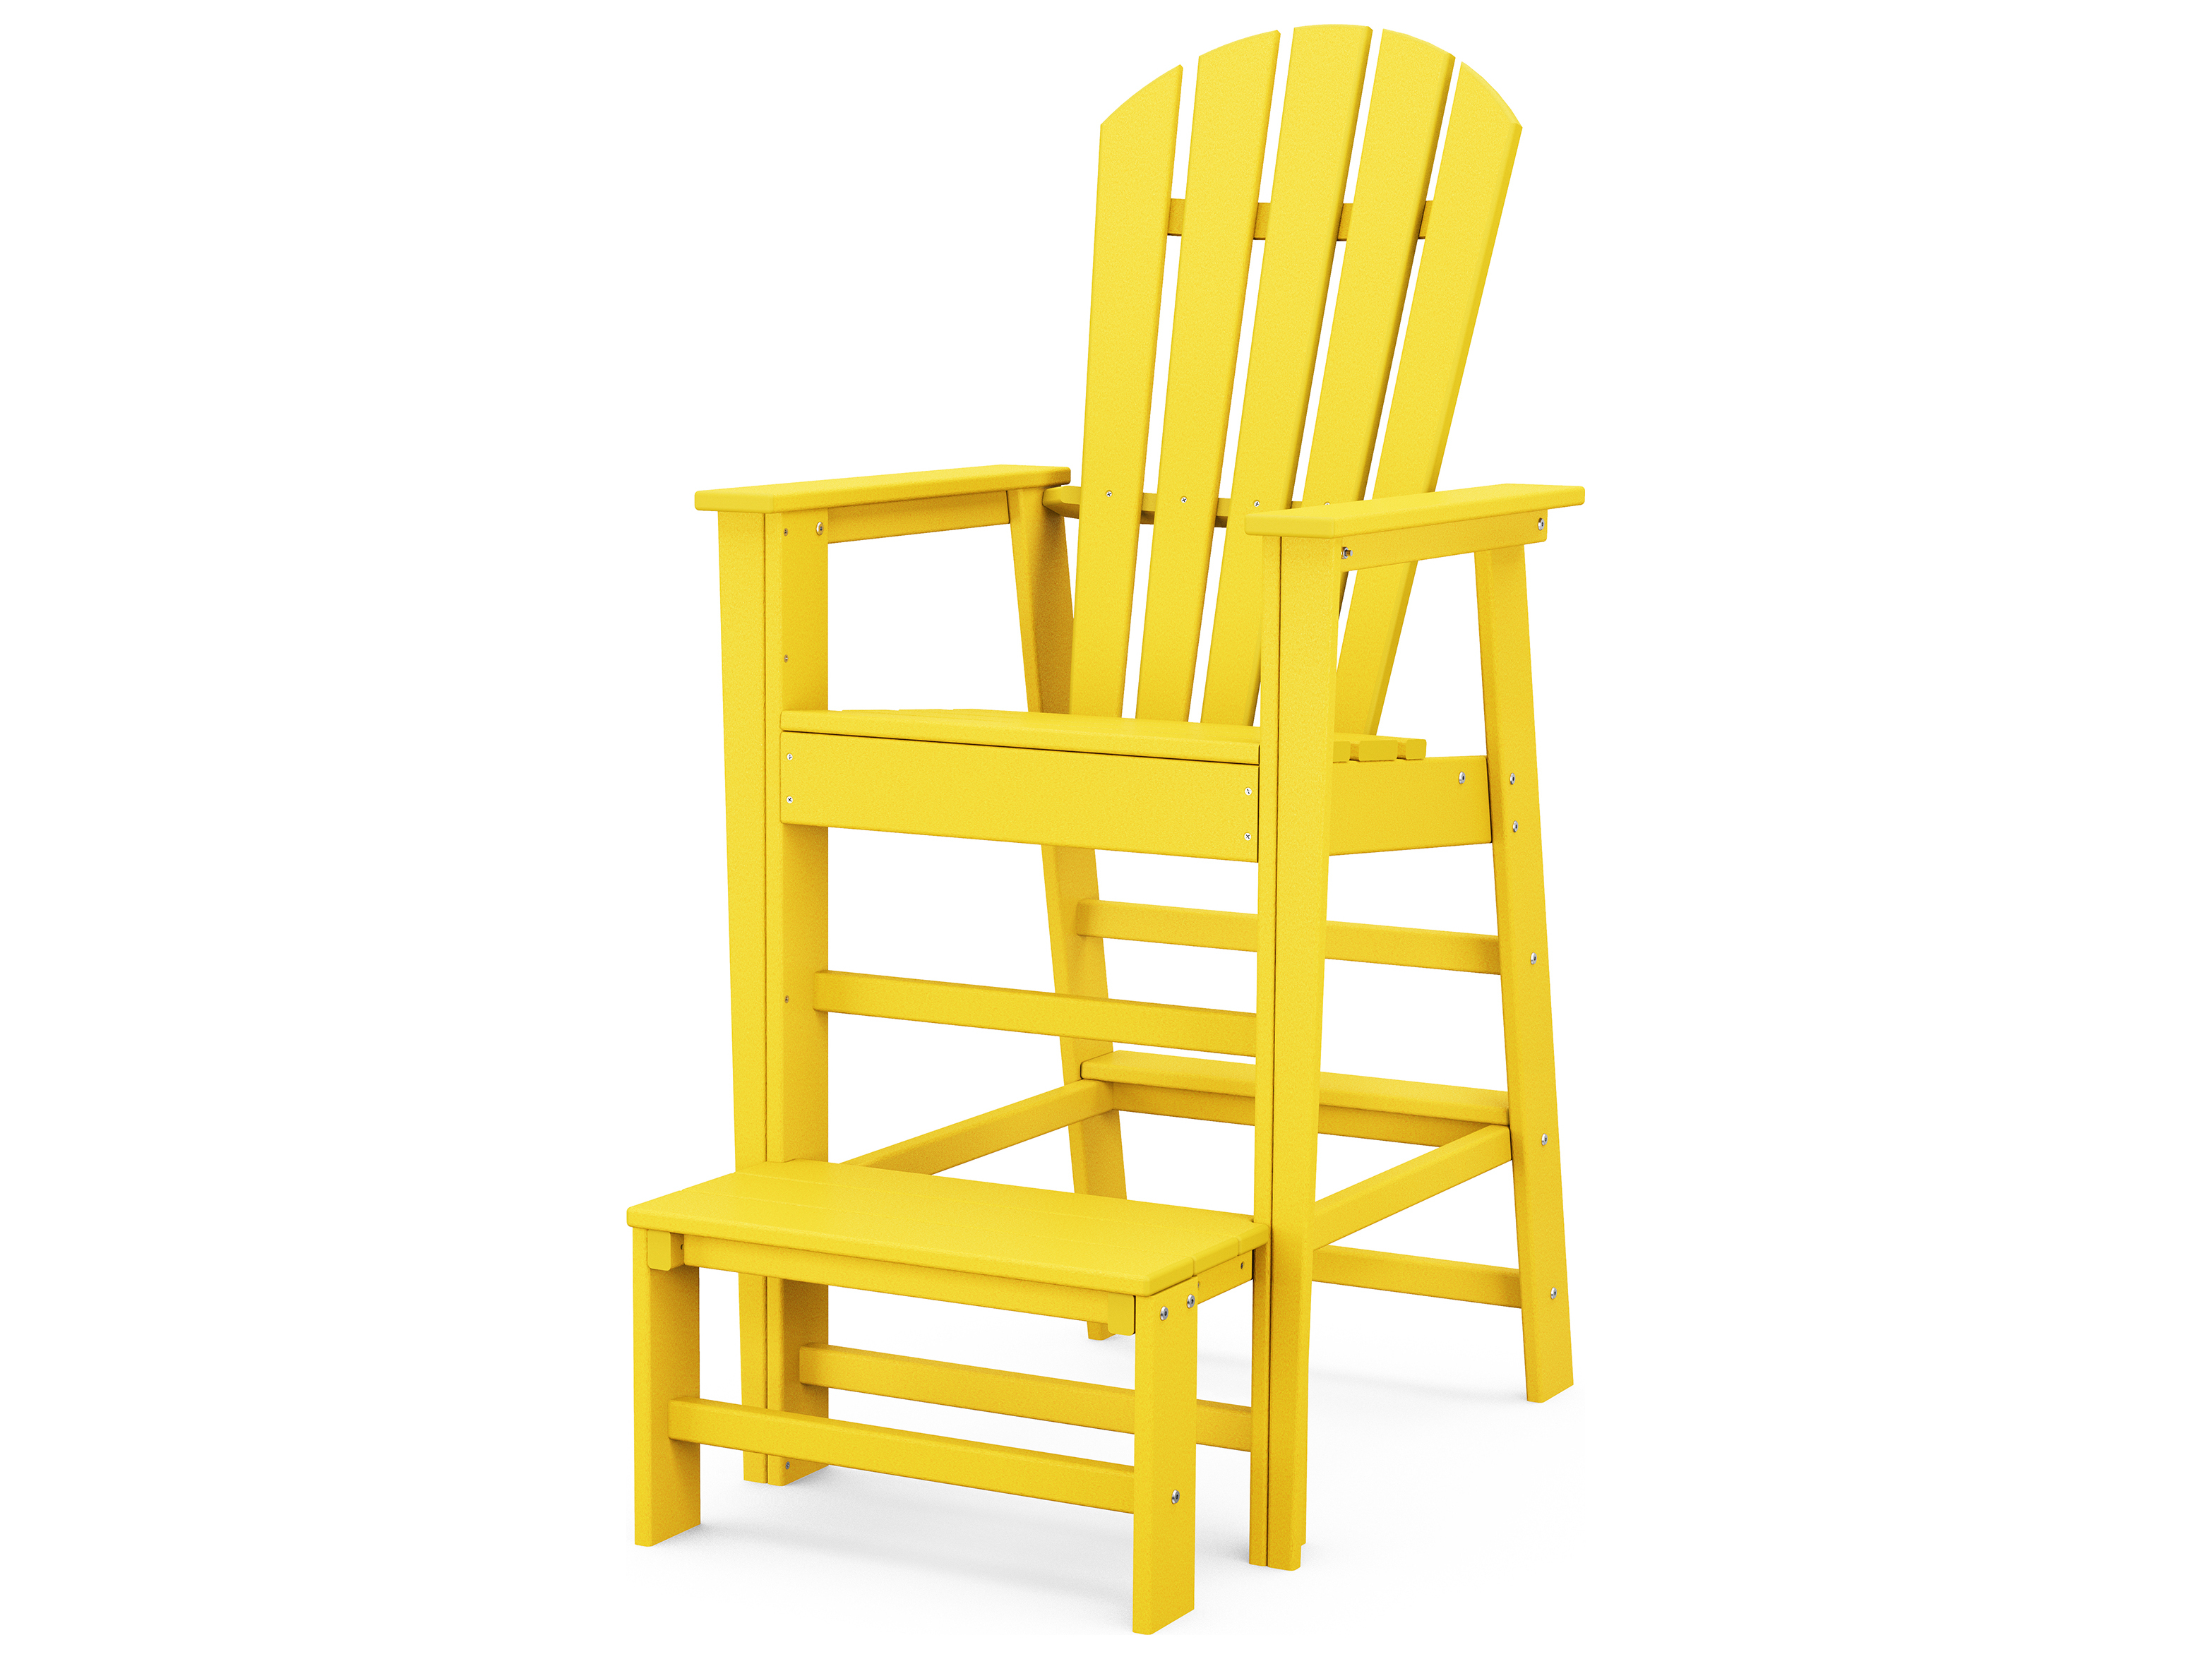 polywood south beach recycled plastic lifeguard chair sbl30. Black Bedroom Furniture Sets. Home Design Ideas